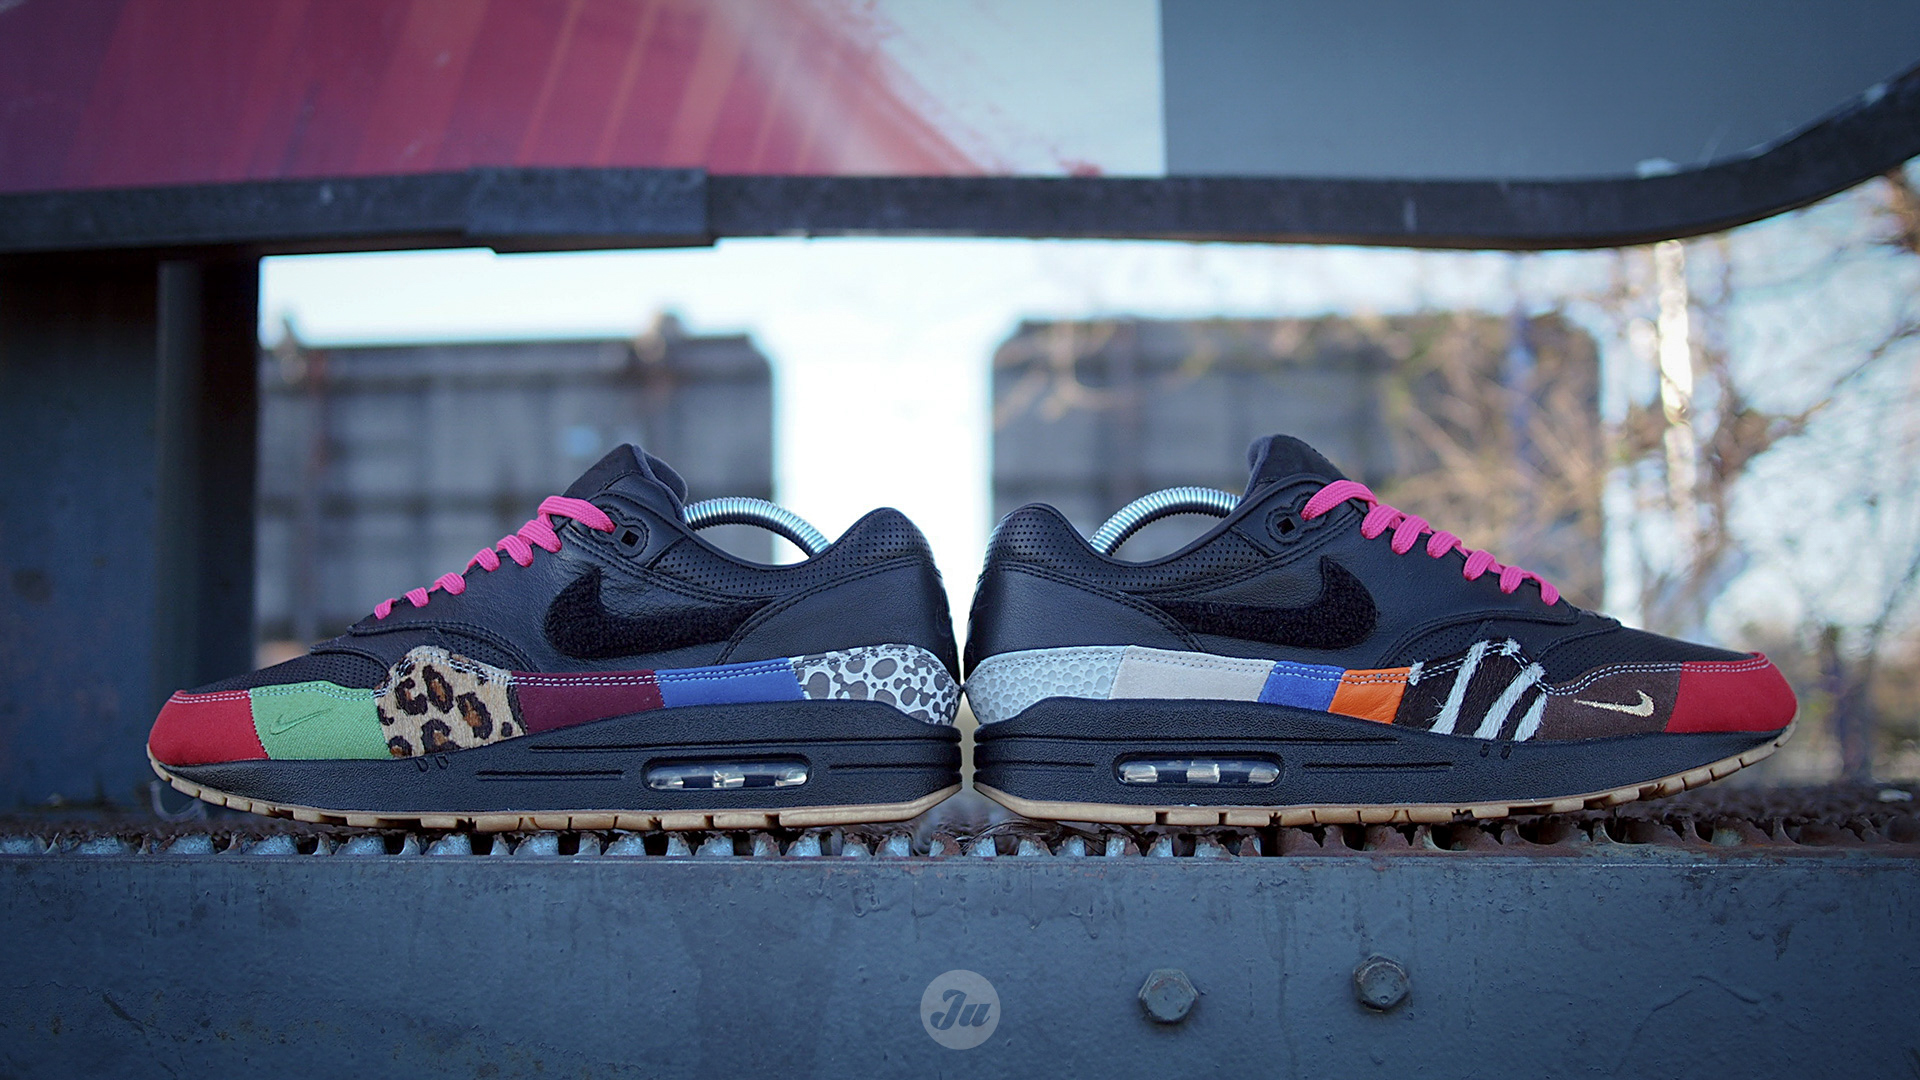 bbdd10762f Review w/ on-feet video] Lo and behold! The Air Max 1 'Master ...